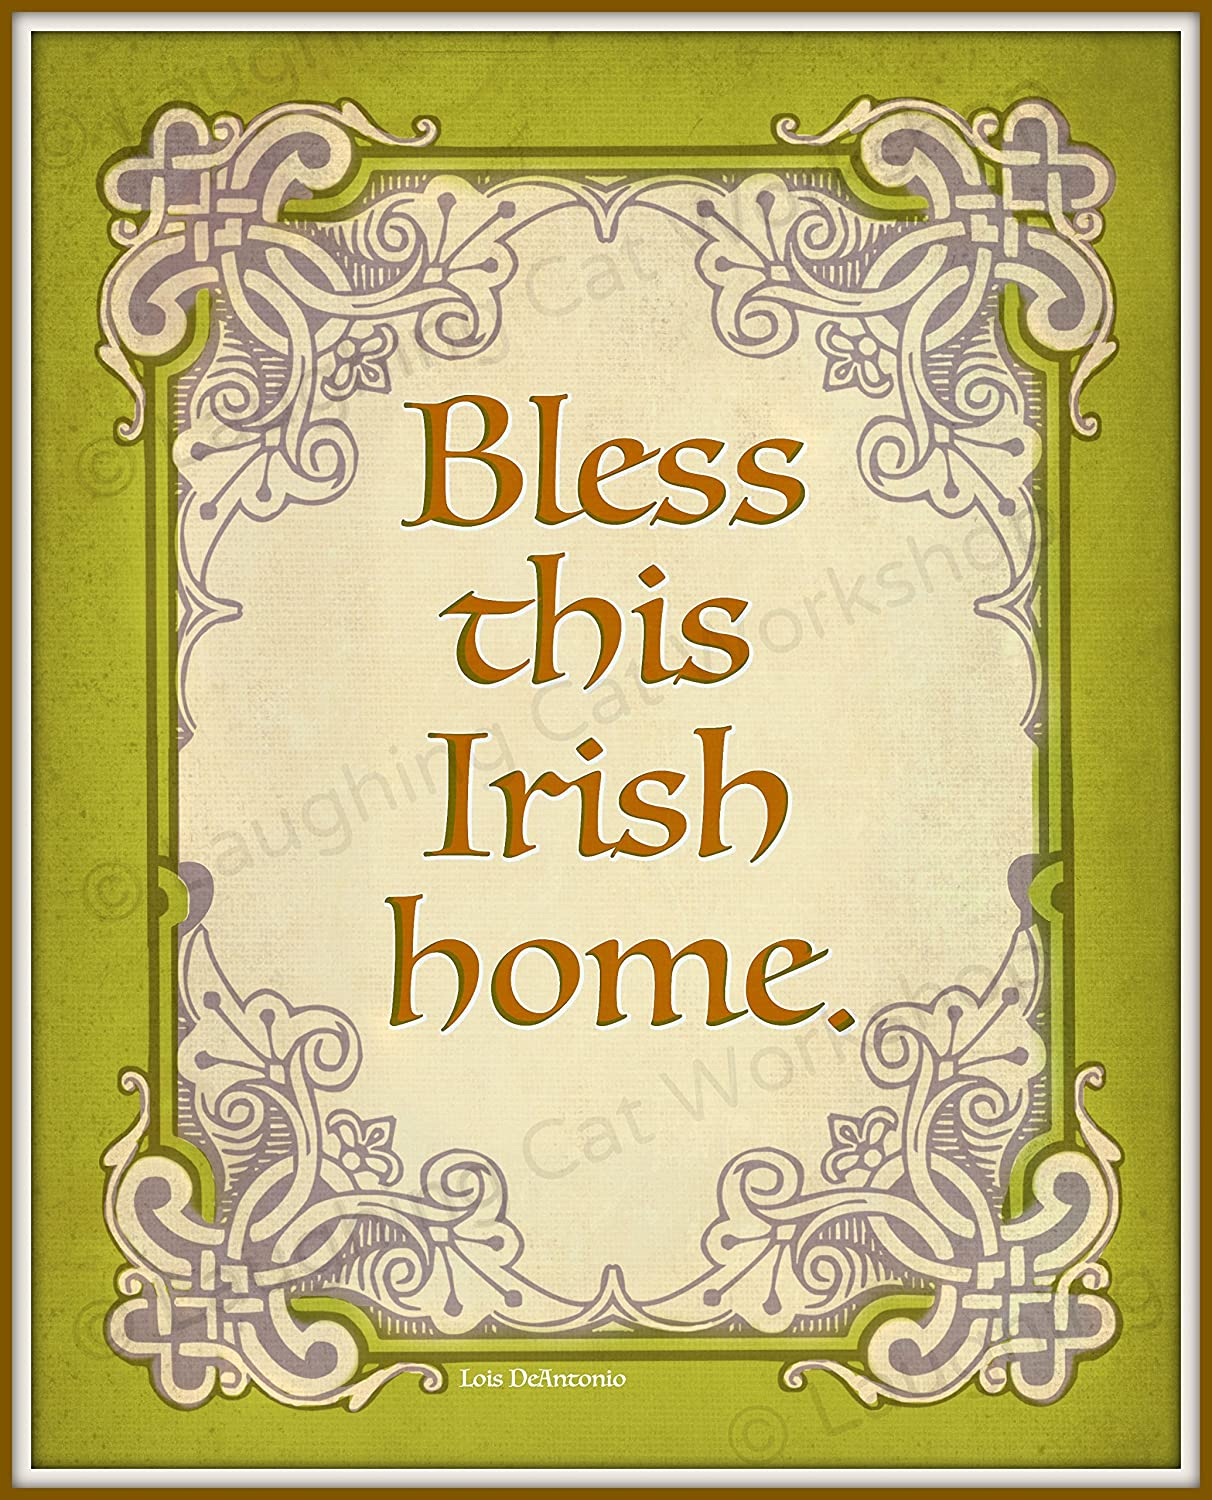 Amazon.com: Bless this Irish Home decor Irish art God Blessing Irish ...